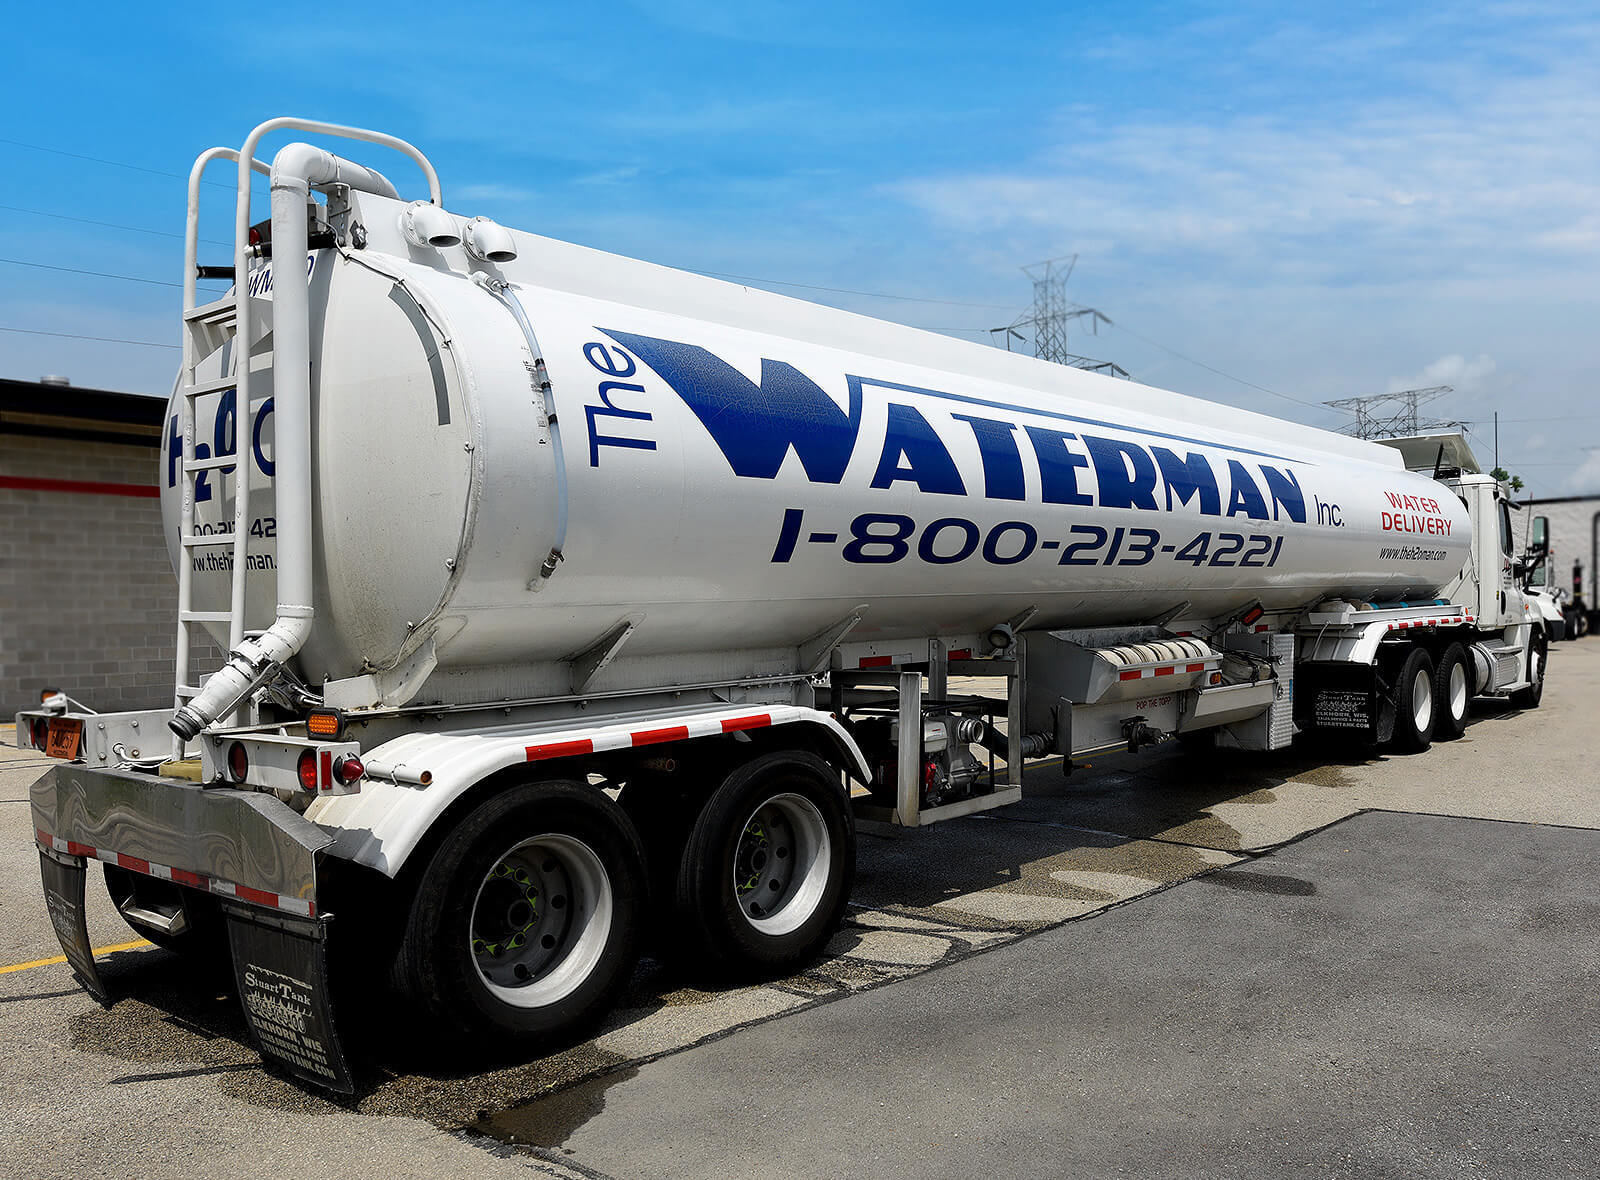 The Waterman truck photography